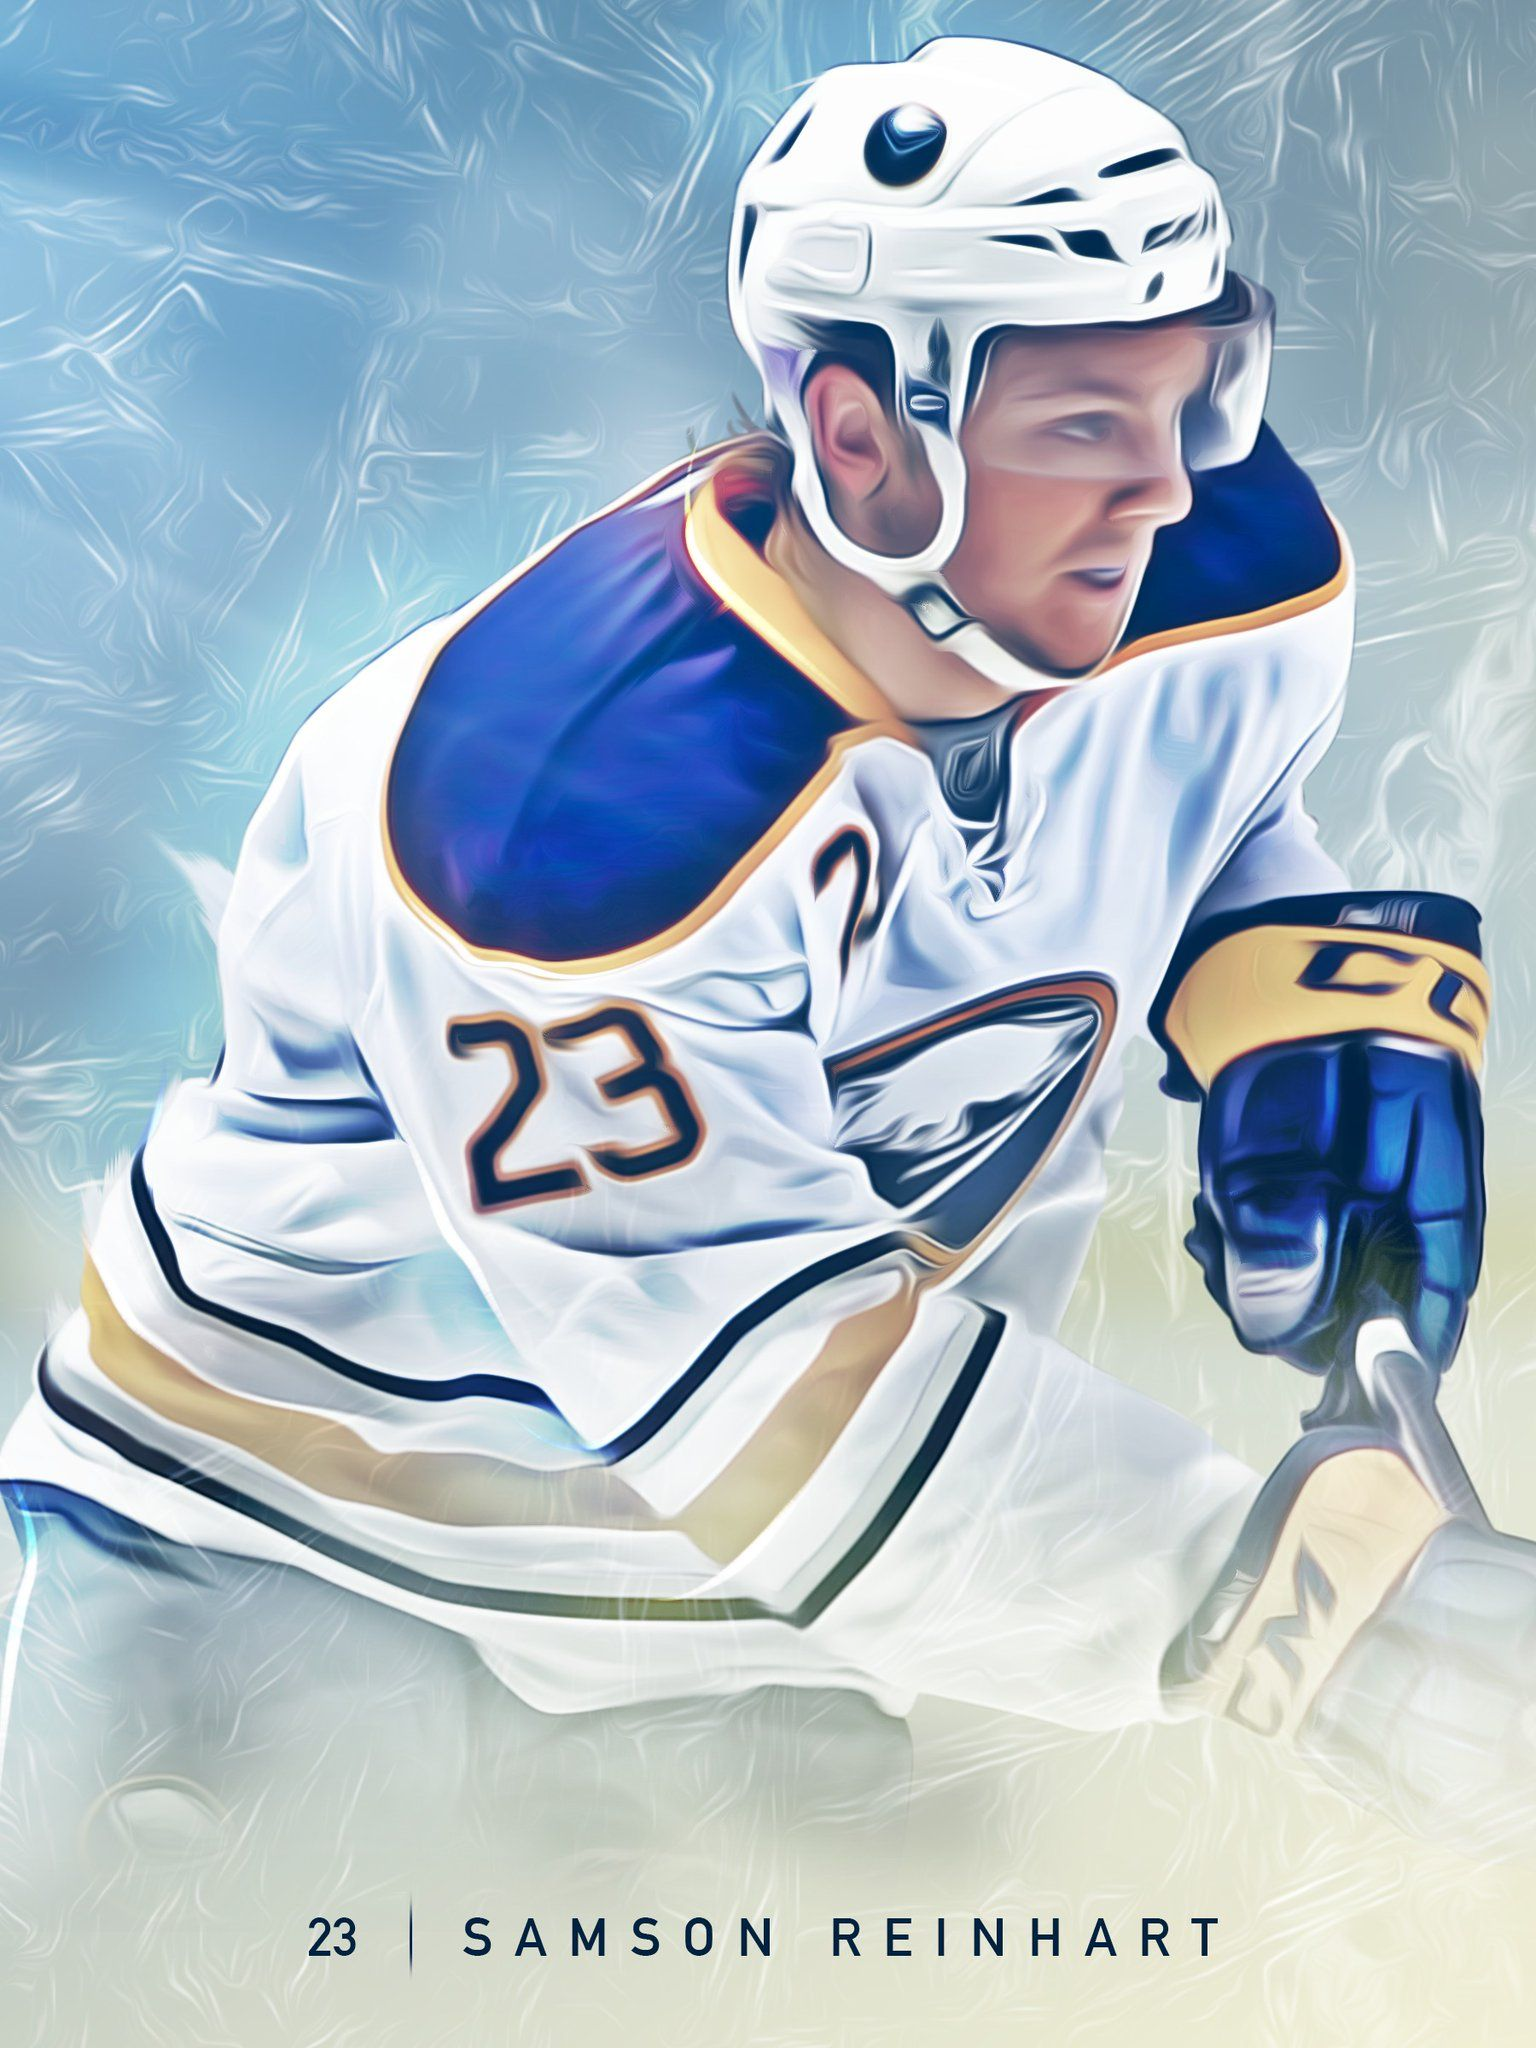 """Dylan Nowak on Twitter: """"Really loving the way these are turning out. Might have to print one. #Sabres #onebuffalo https://t.co/NLvIDo8qqP"""""""